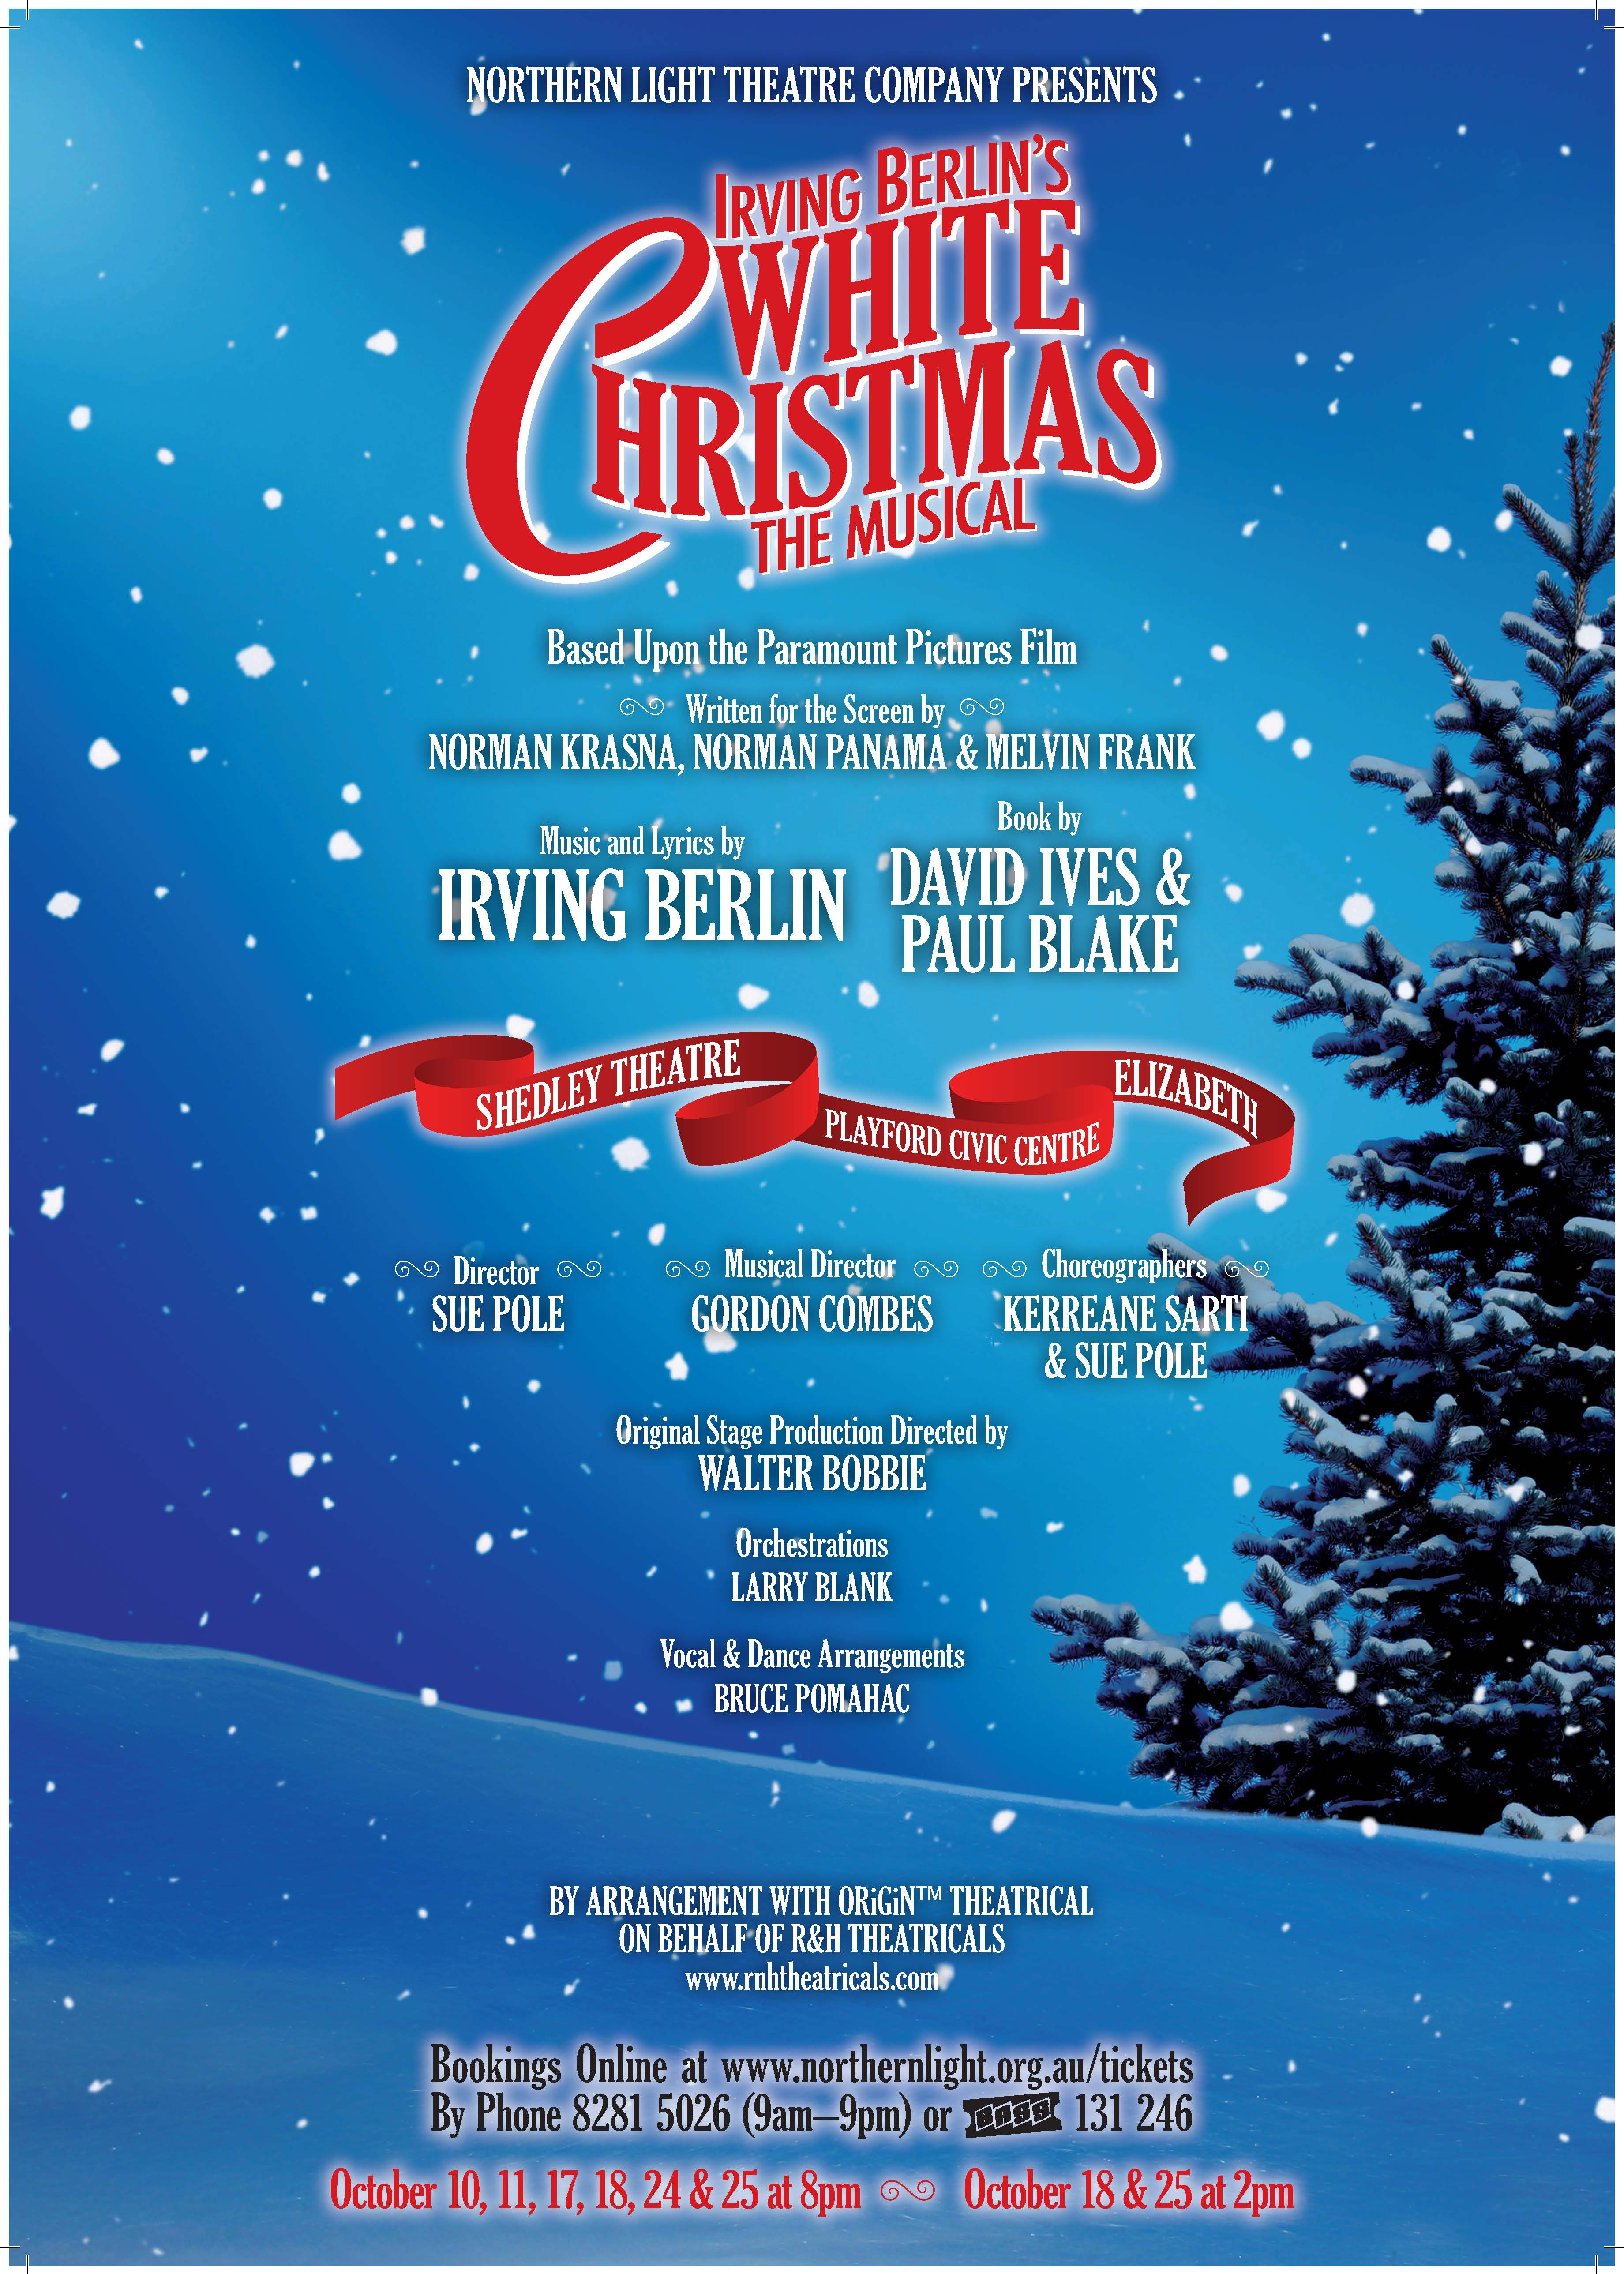 White Christmas Irving Berling.Irving Berlin S White Christmas Northern Light Theatre Company